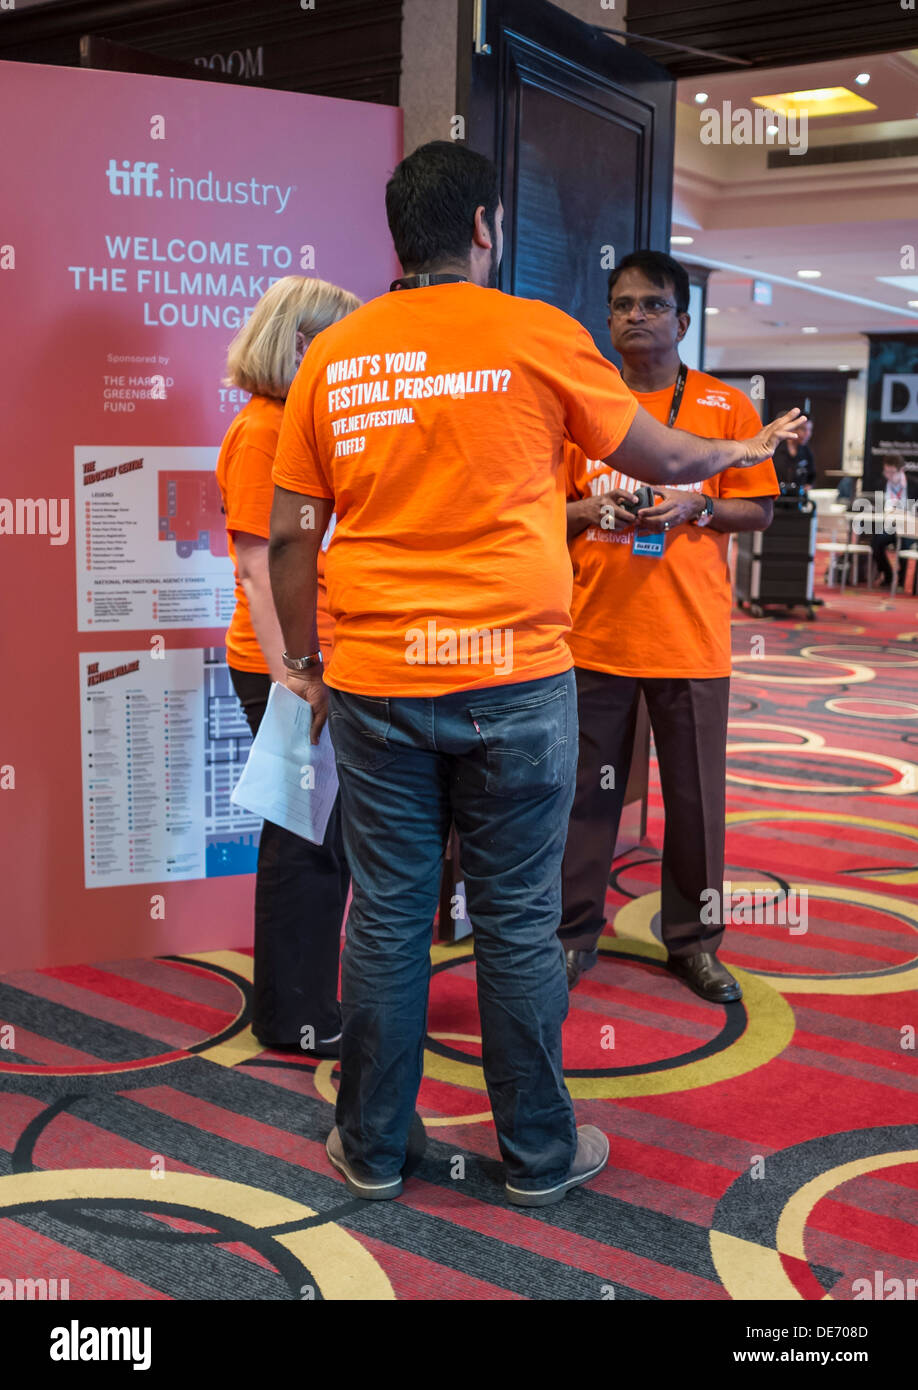 Volunteers at the entrance of the film maker's lounge at the TIFF Bell Lightbox  2013 Toronto International Film Festival - Stock Image